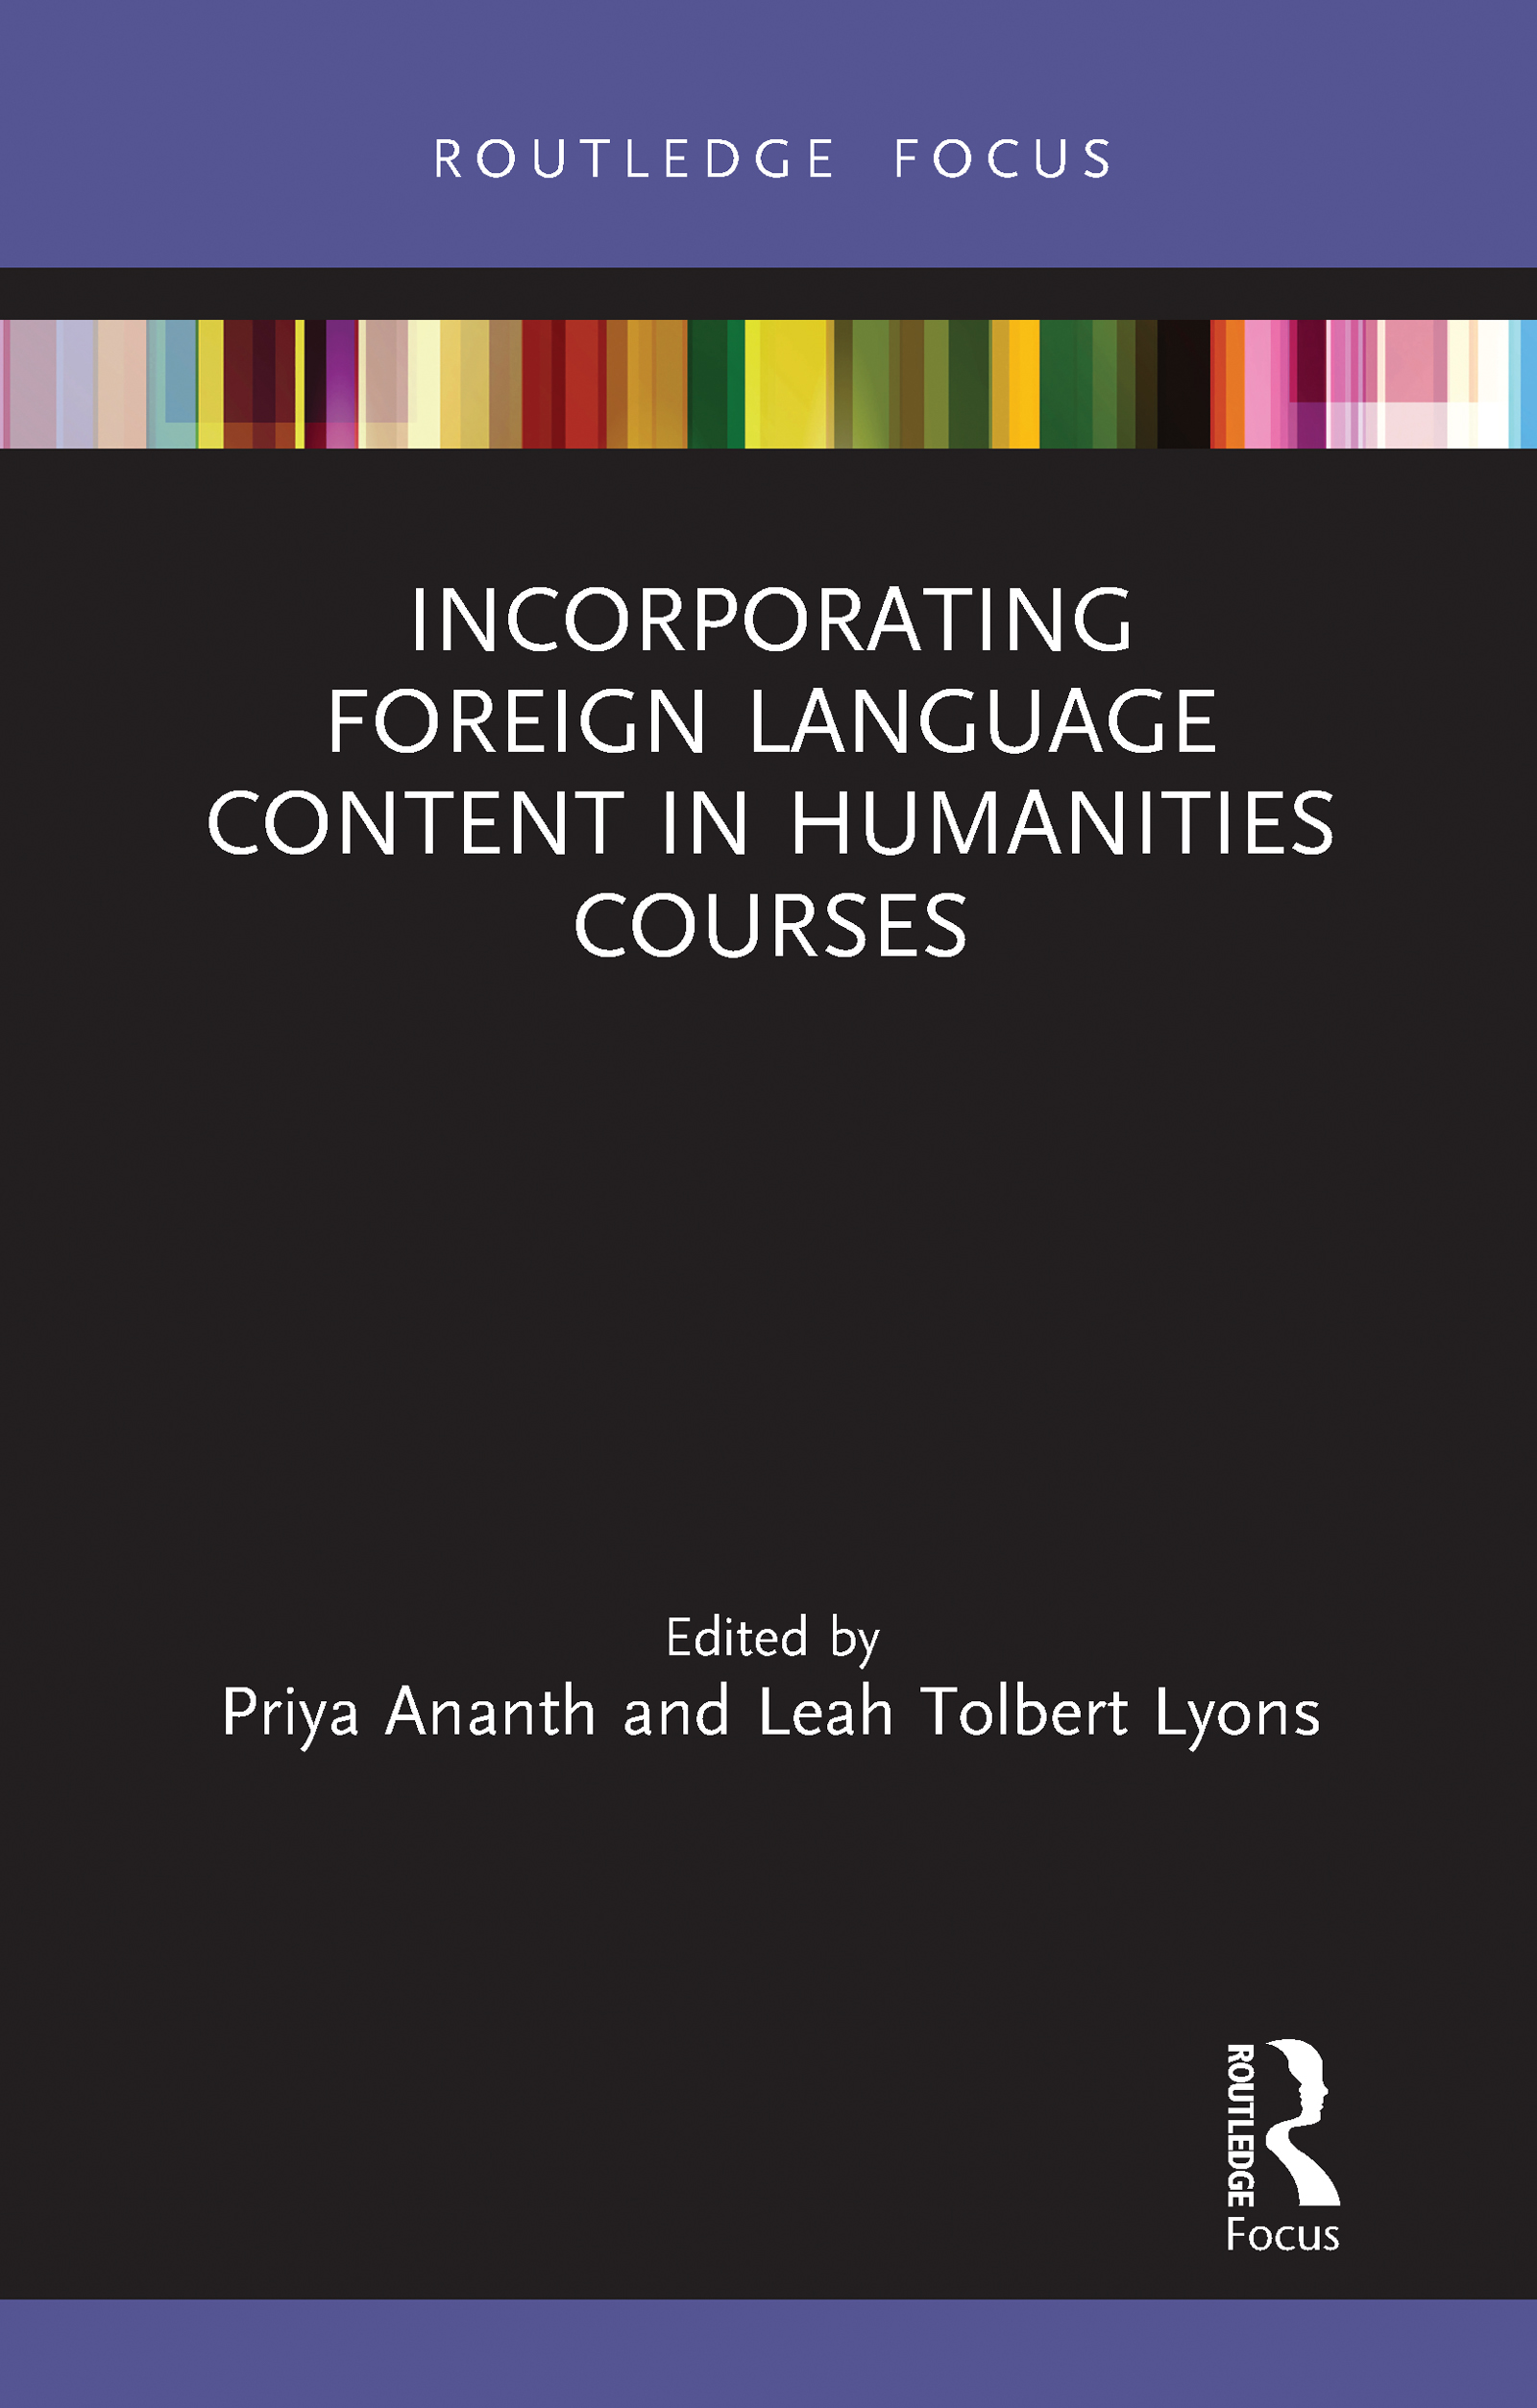 Incorporating Foreign Language Content in Humanities Courses